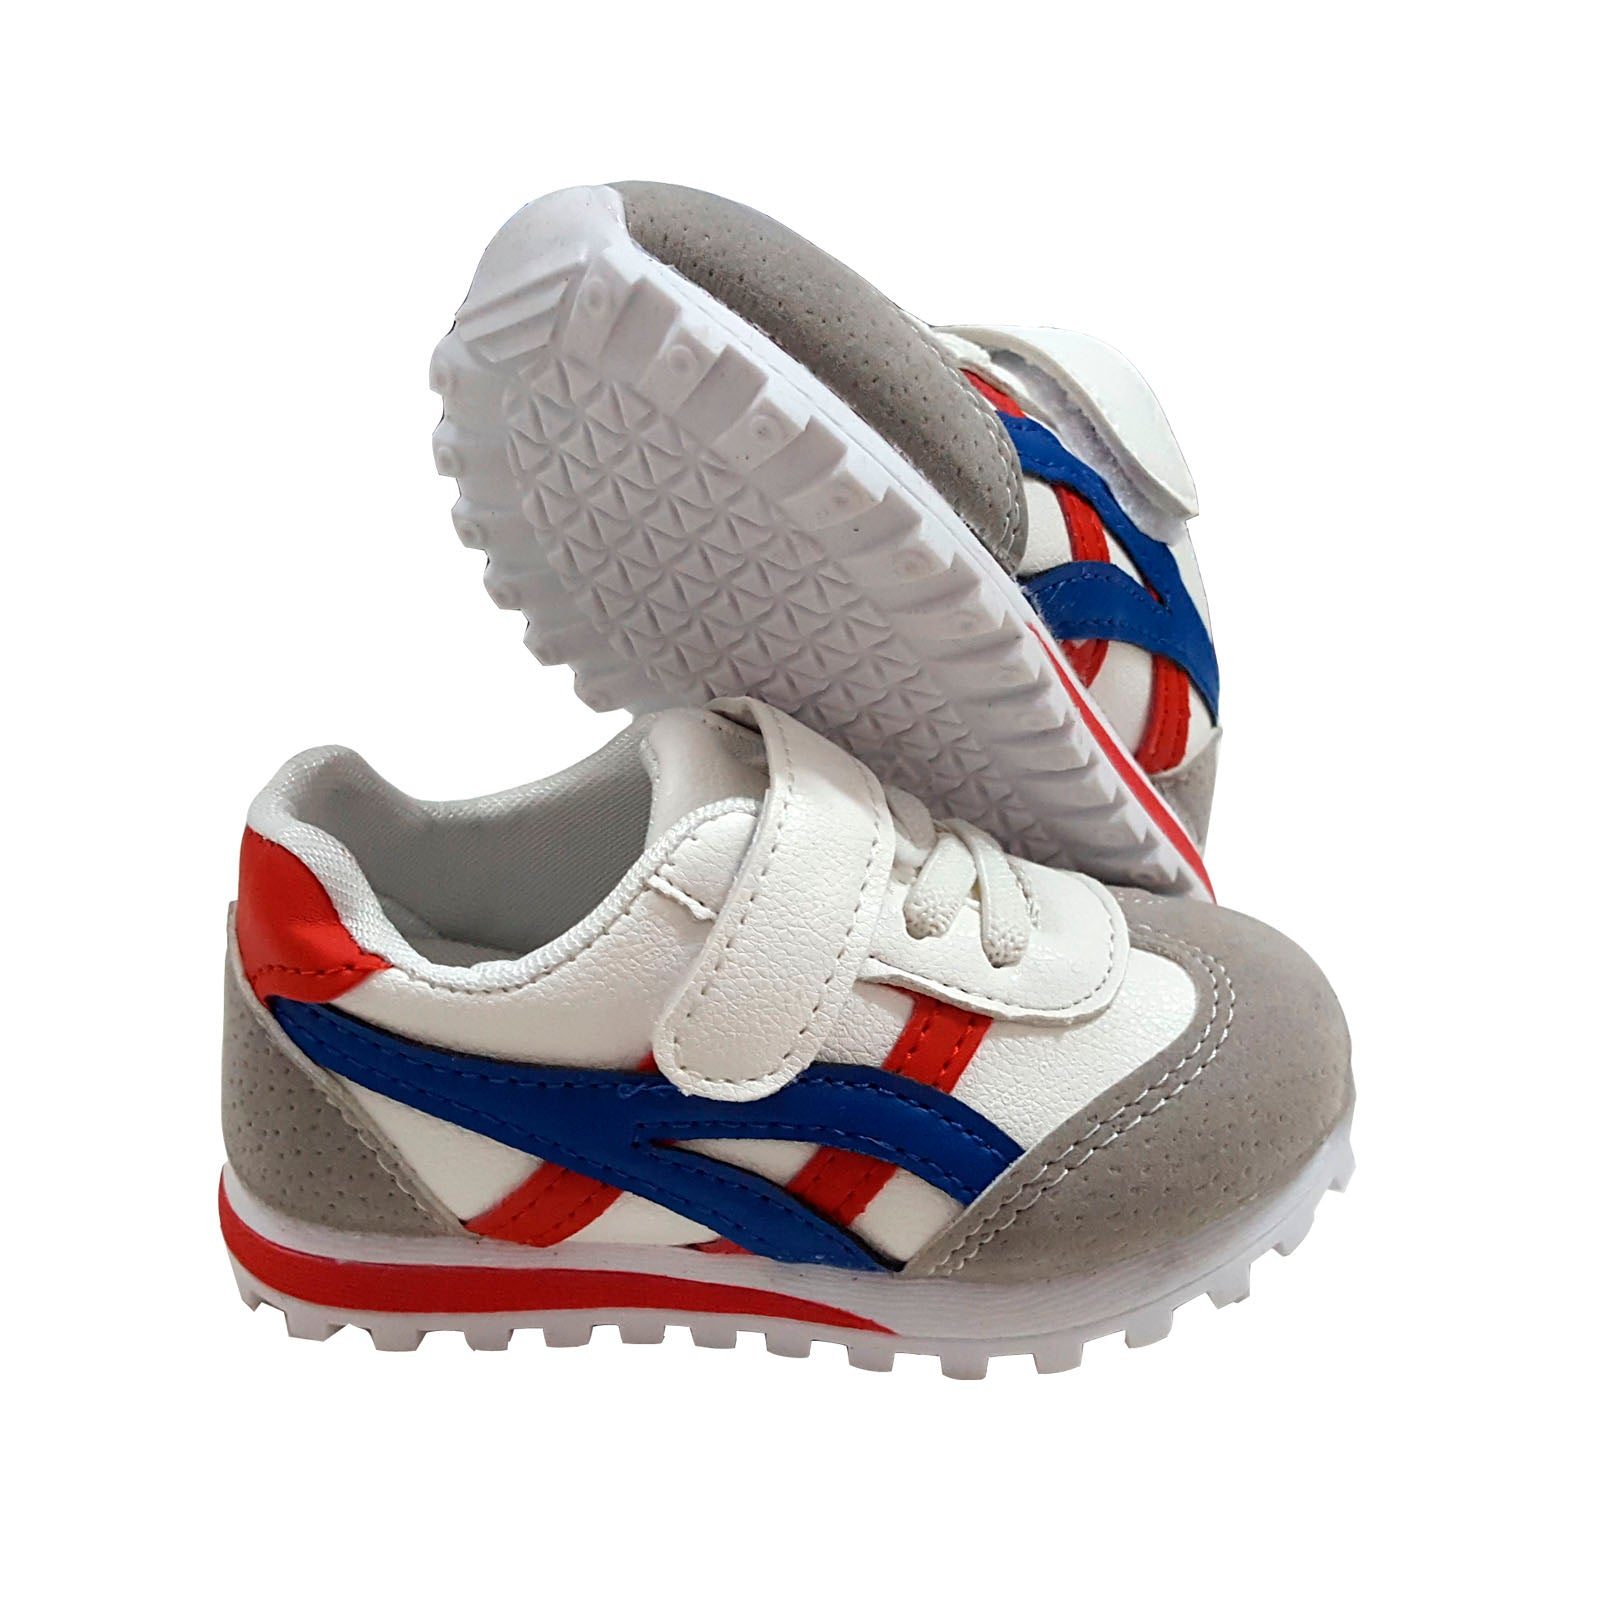 S175 Raf Raf Sports Shoes - Lynx Red Offer